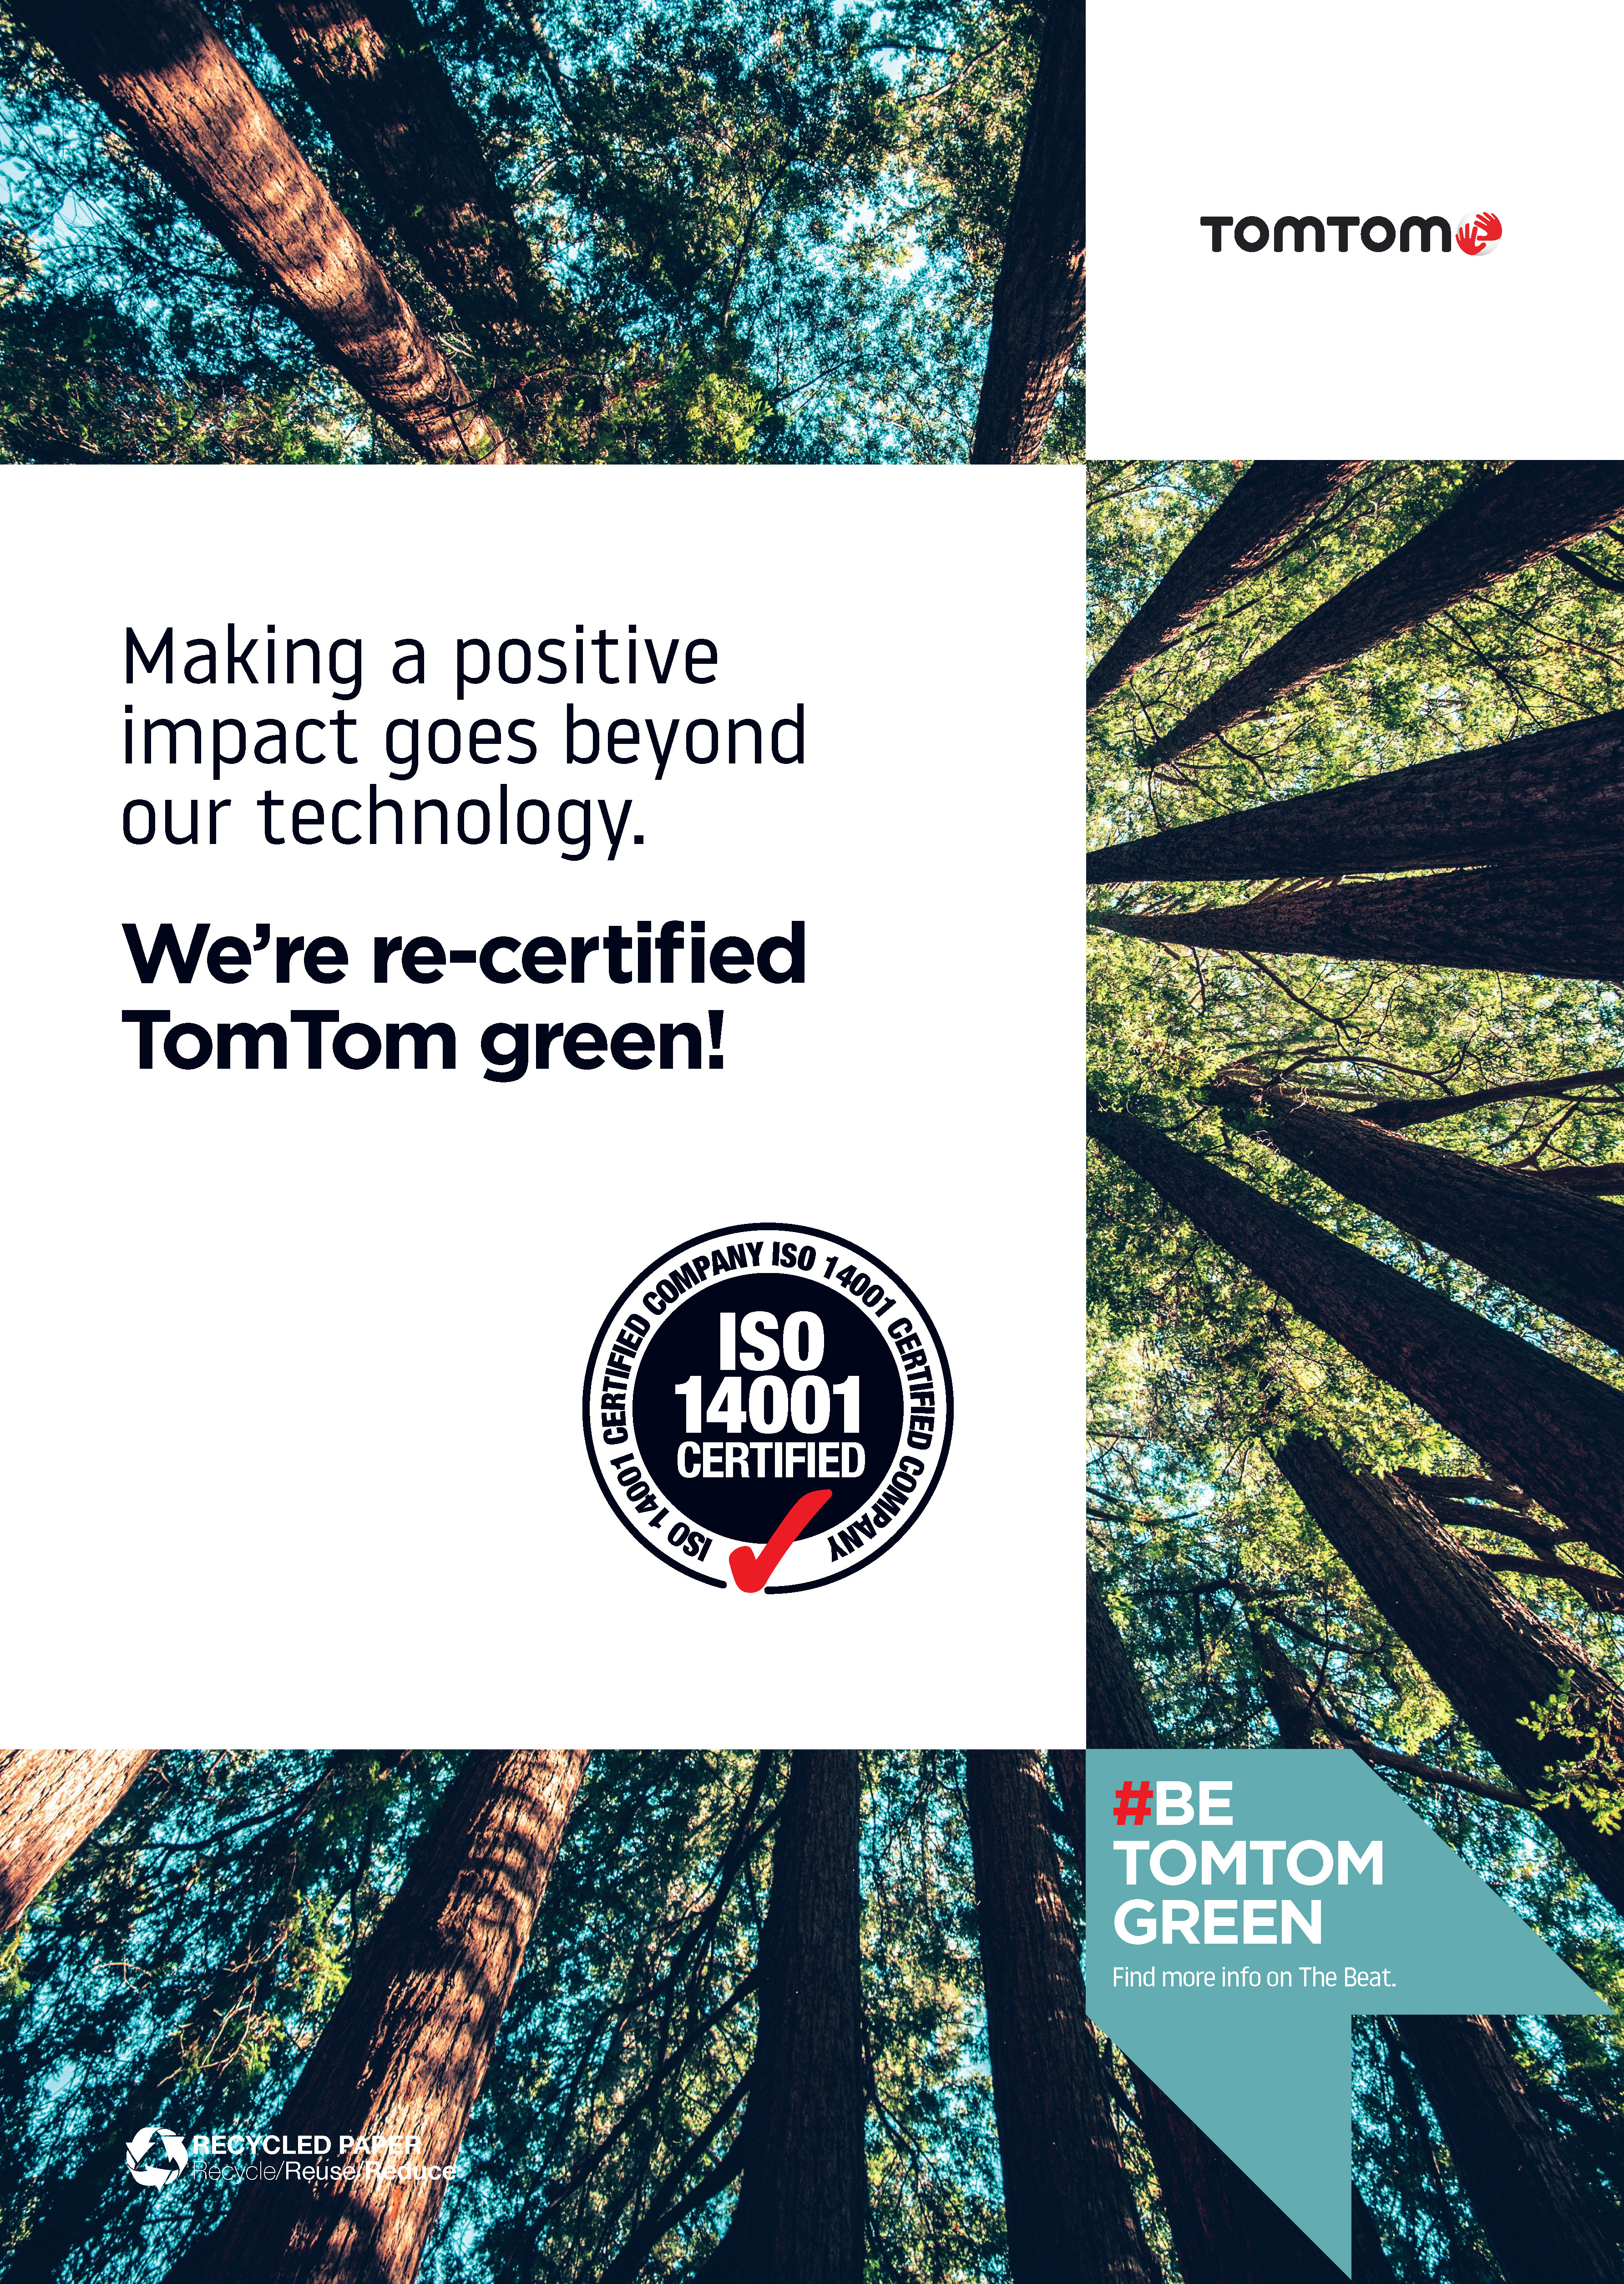 Be TomTom Green poster